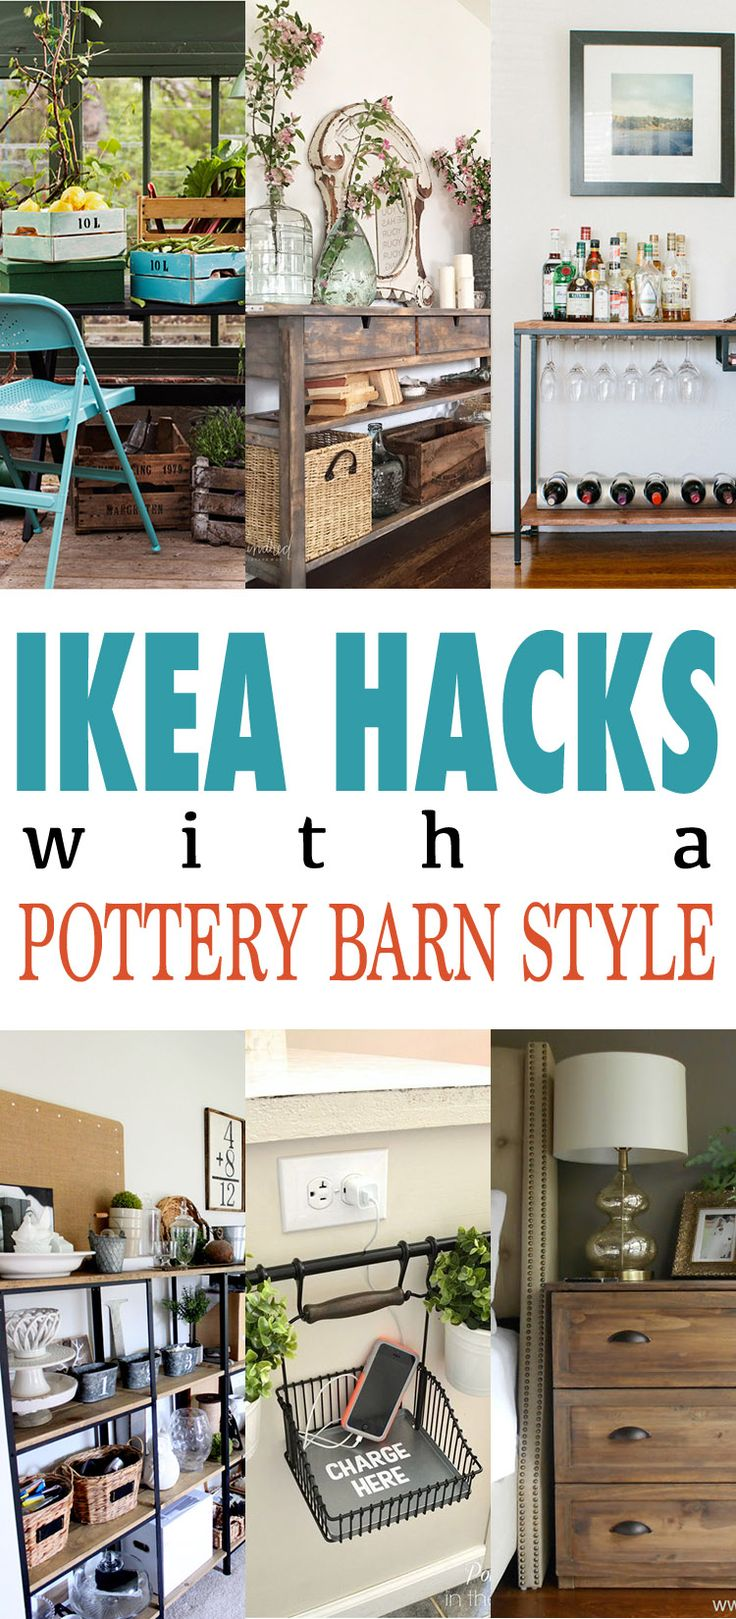 Well my friends…one things has been established here at The Cottage Market…all of our readers LOVE IKEA Hacks!!!!!  Then on the flip side…all of our readers adore Pottery Barn Hacks…but now for the first time (drumroll please) we have a collection of IKEA HACKS with a Pottery Barn Style!!!!  Now tell me…how excited are you?  …